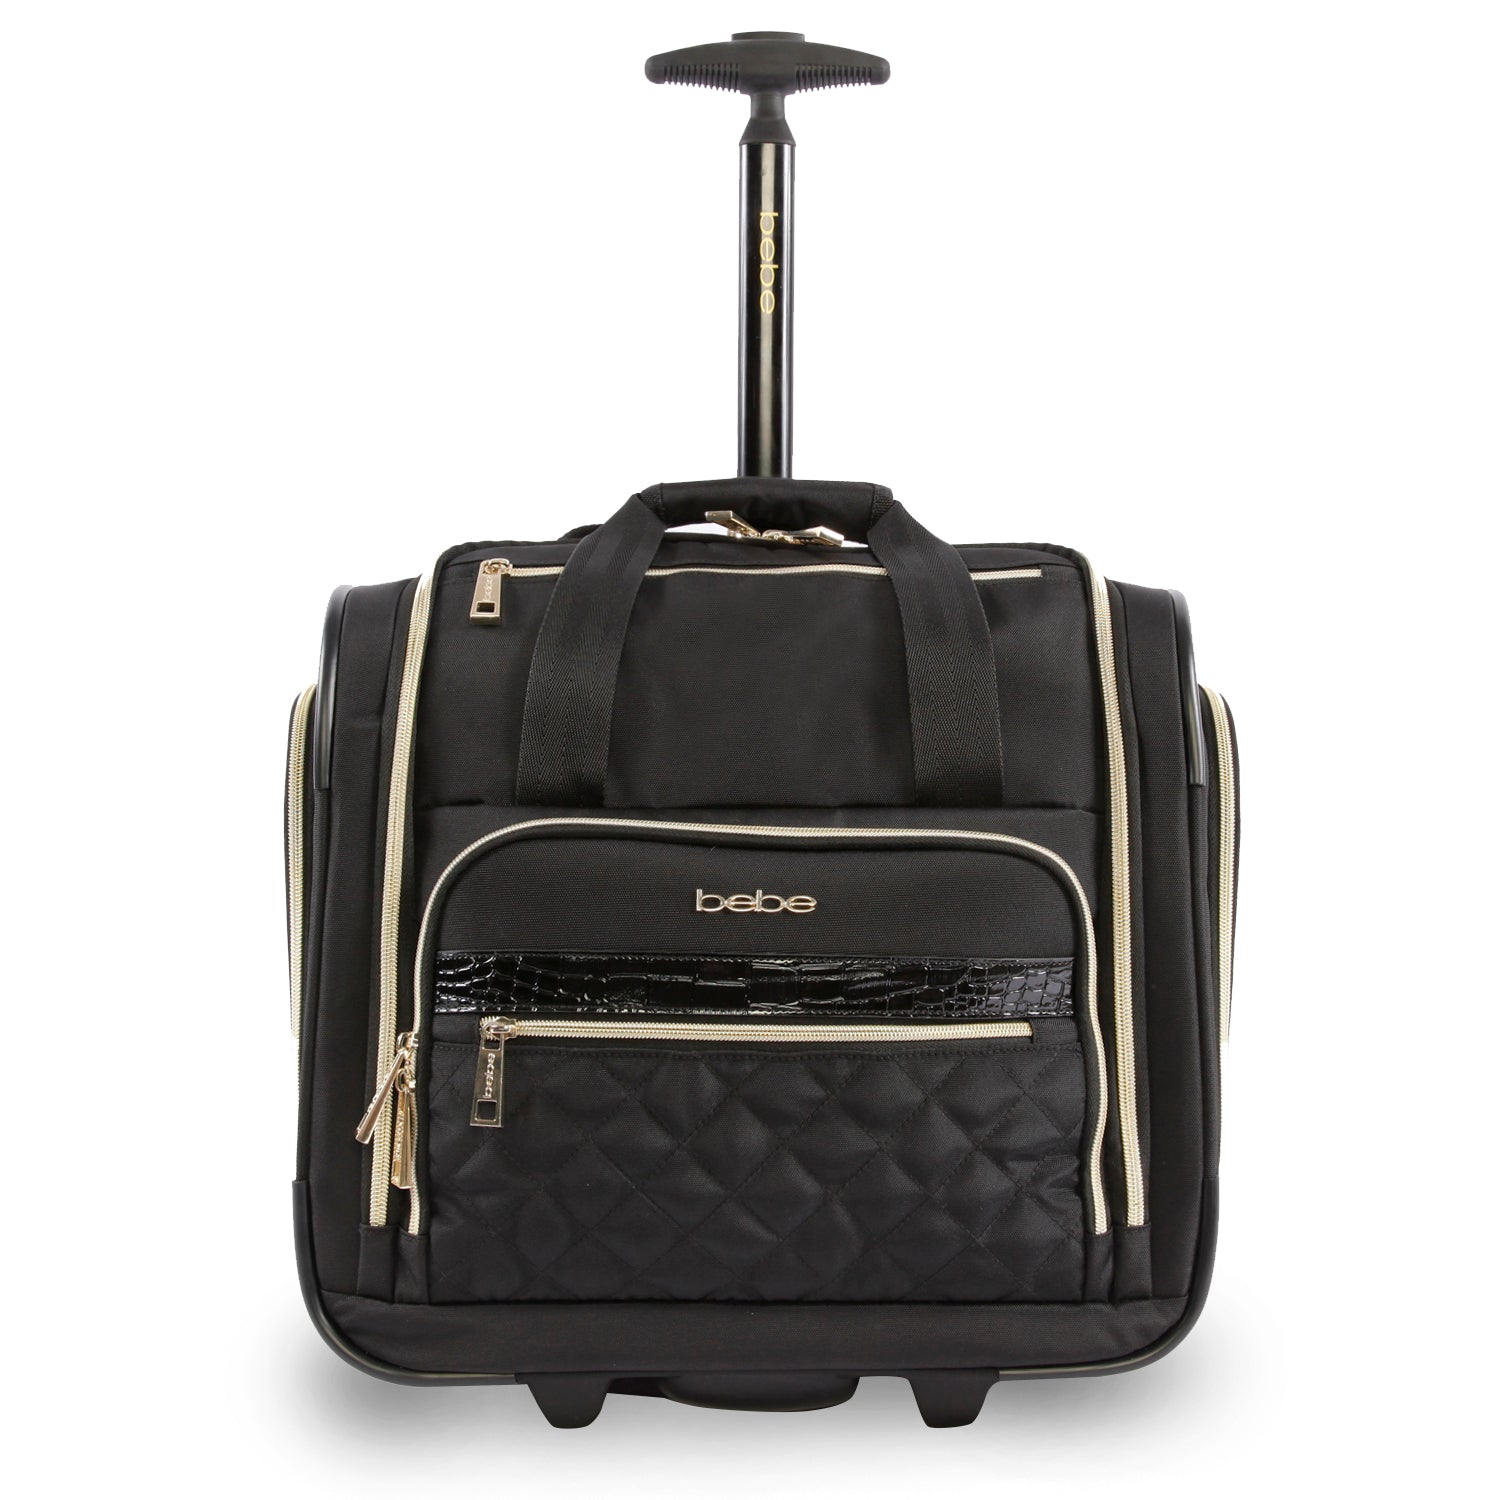 Bebe Women's Quilted 15-Inch Underseat Carry-On Bag, Size 15 Inch in Black